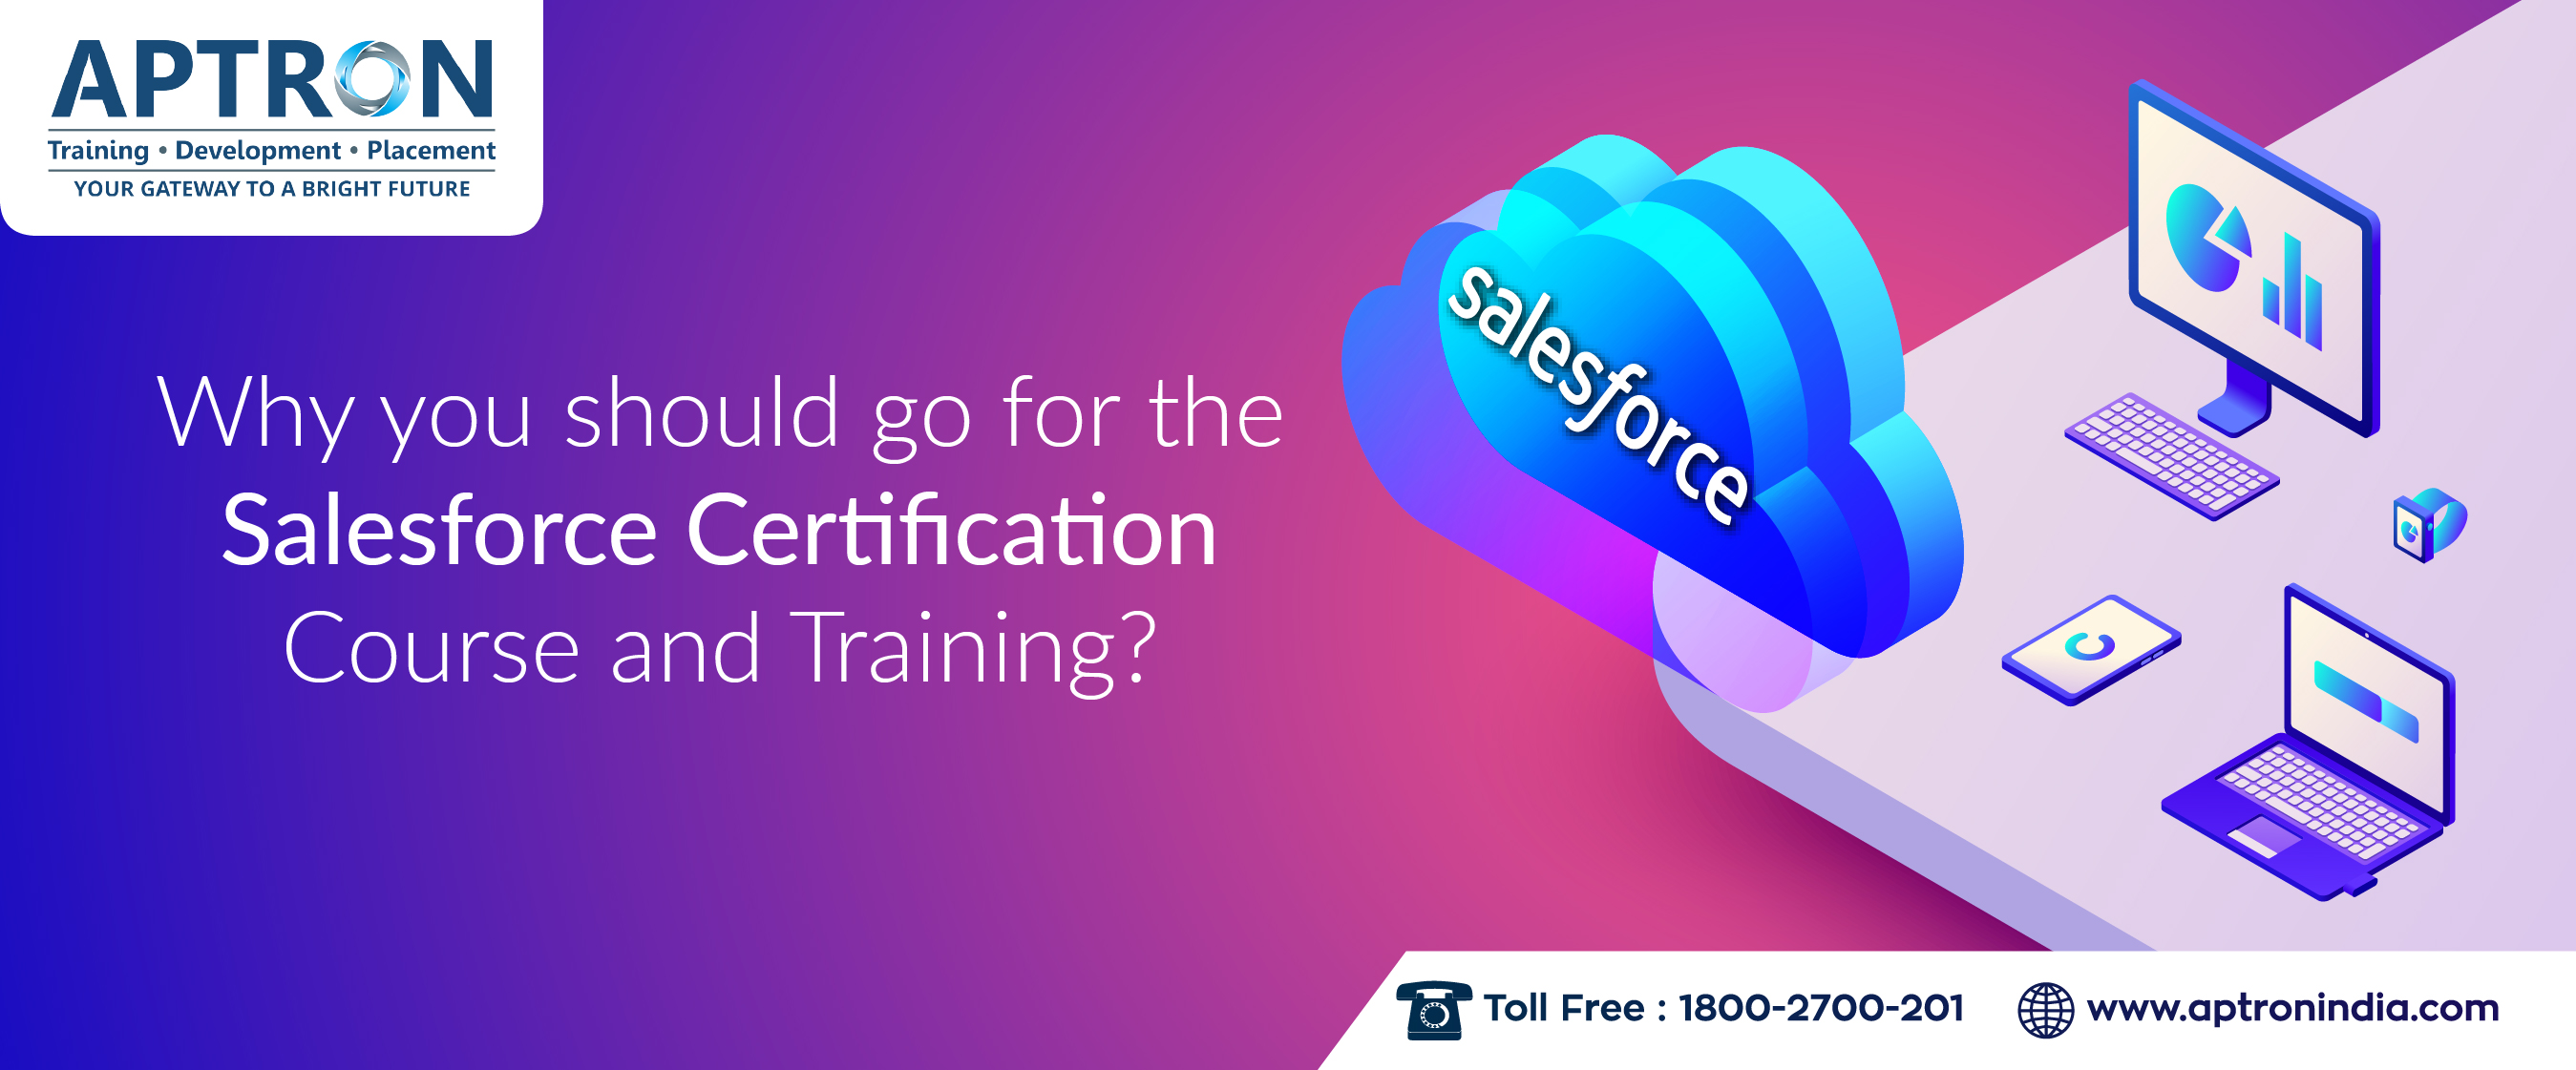 Why you should go for the Salesforce Certification Course and Training?